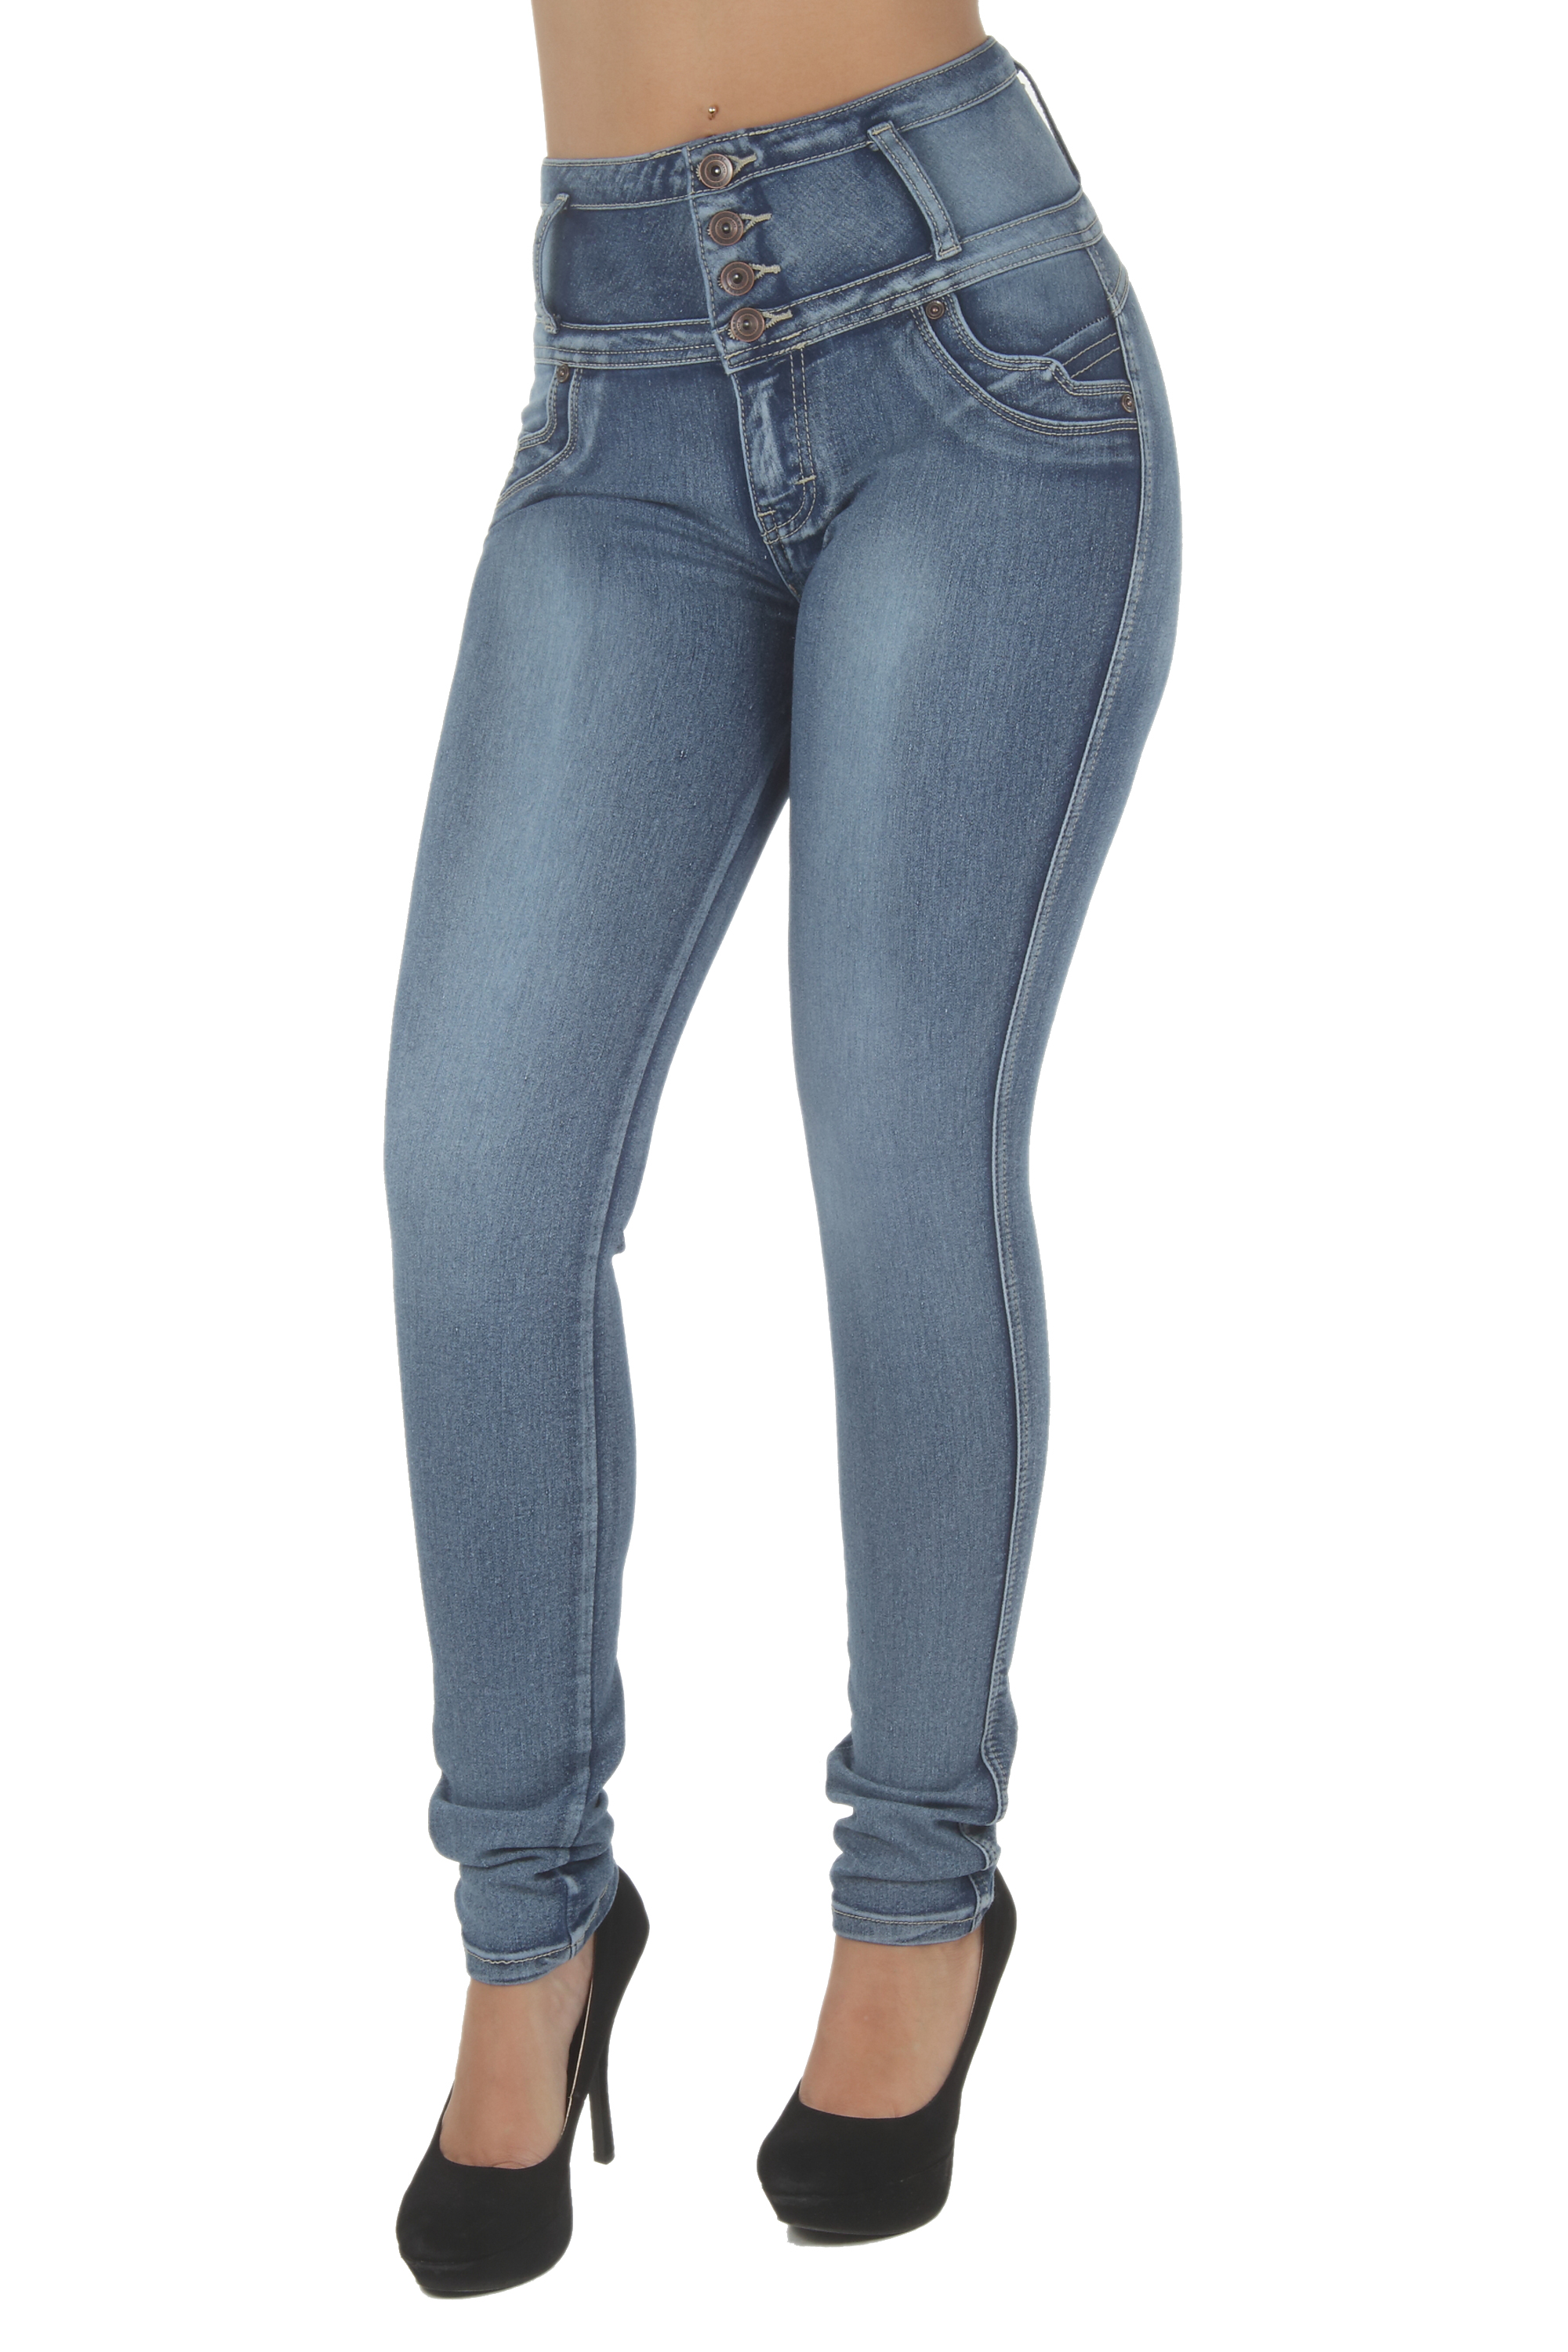 N1191P - Plus Size, Butt Lifting, Levanta Cola, High Waist Sexy Skinny Jeans